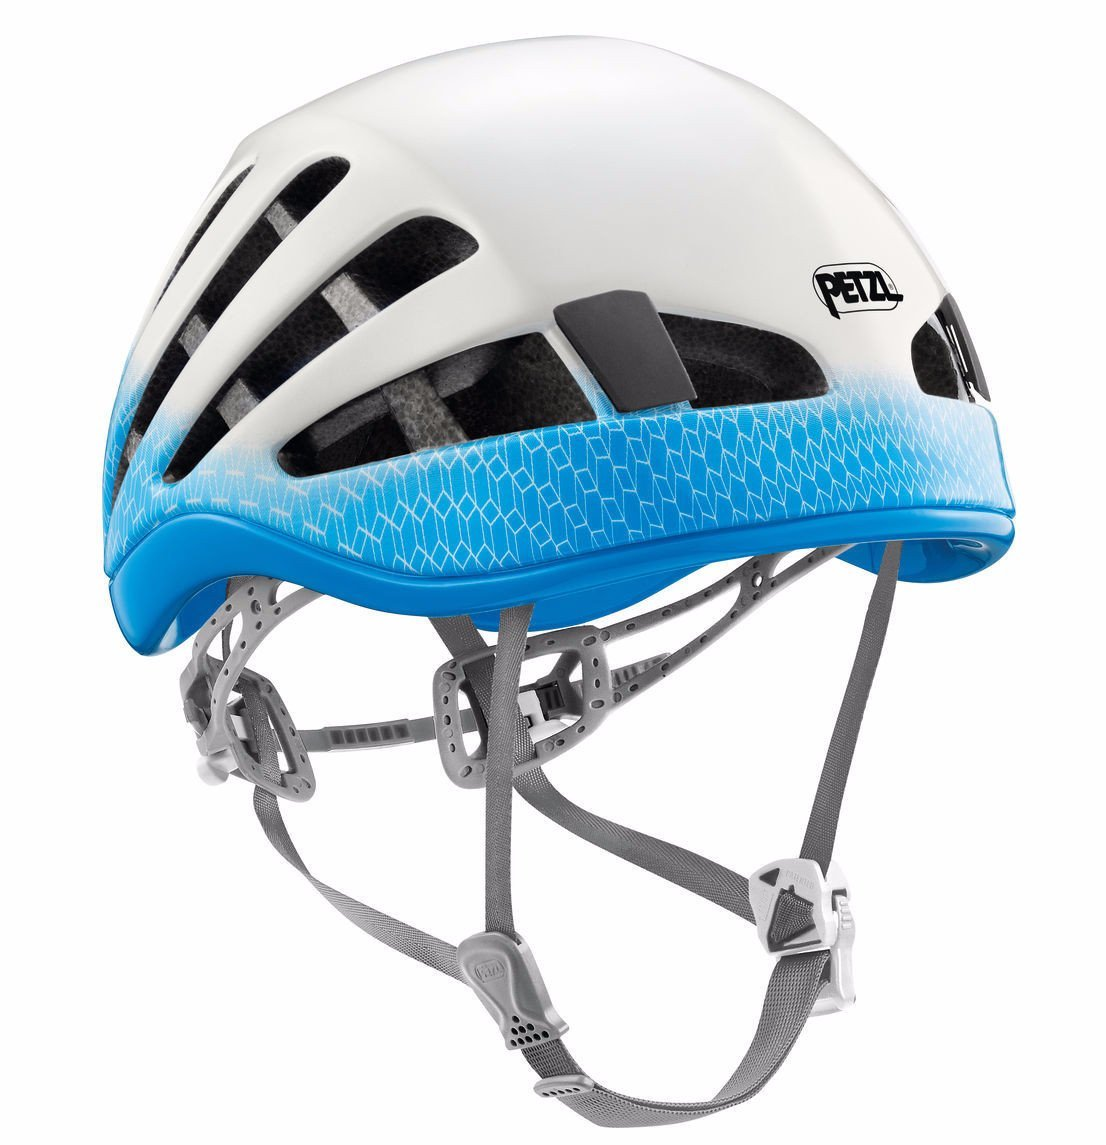 petzl meteor 4 climbing helmet white and blue